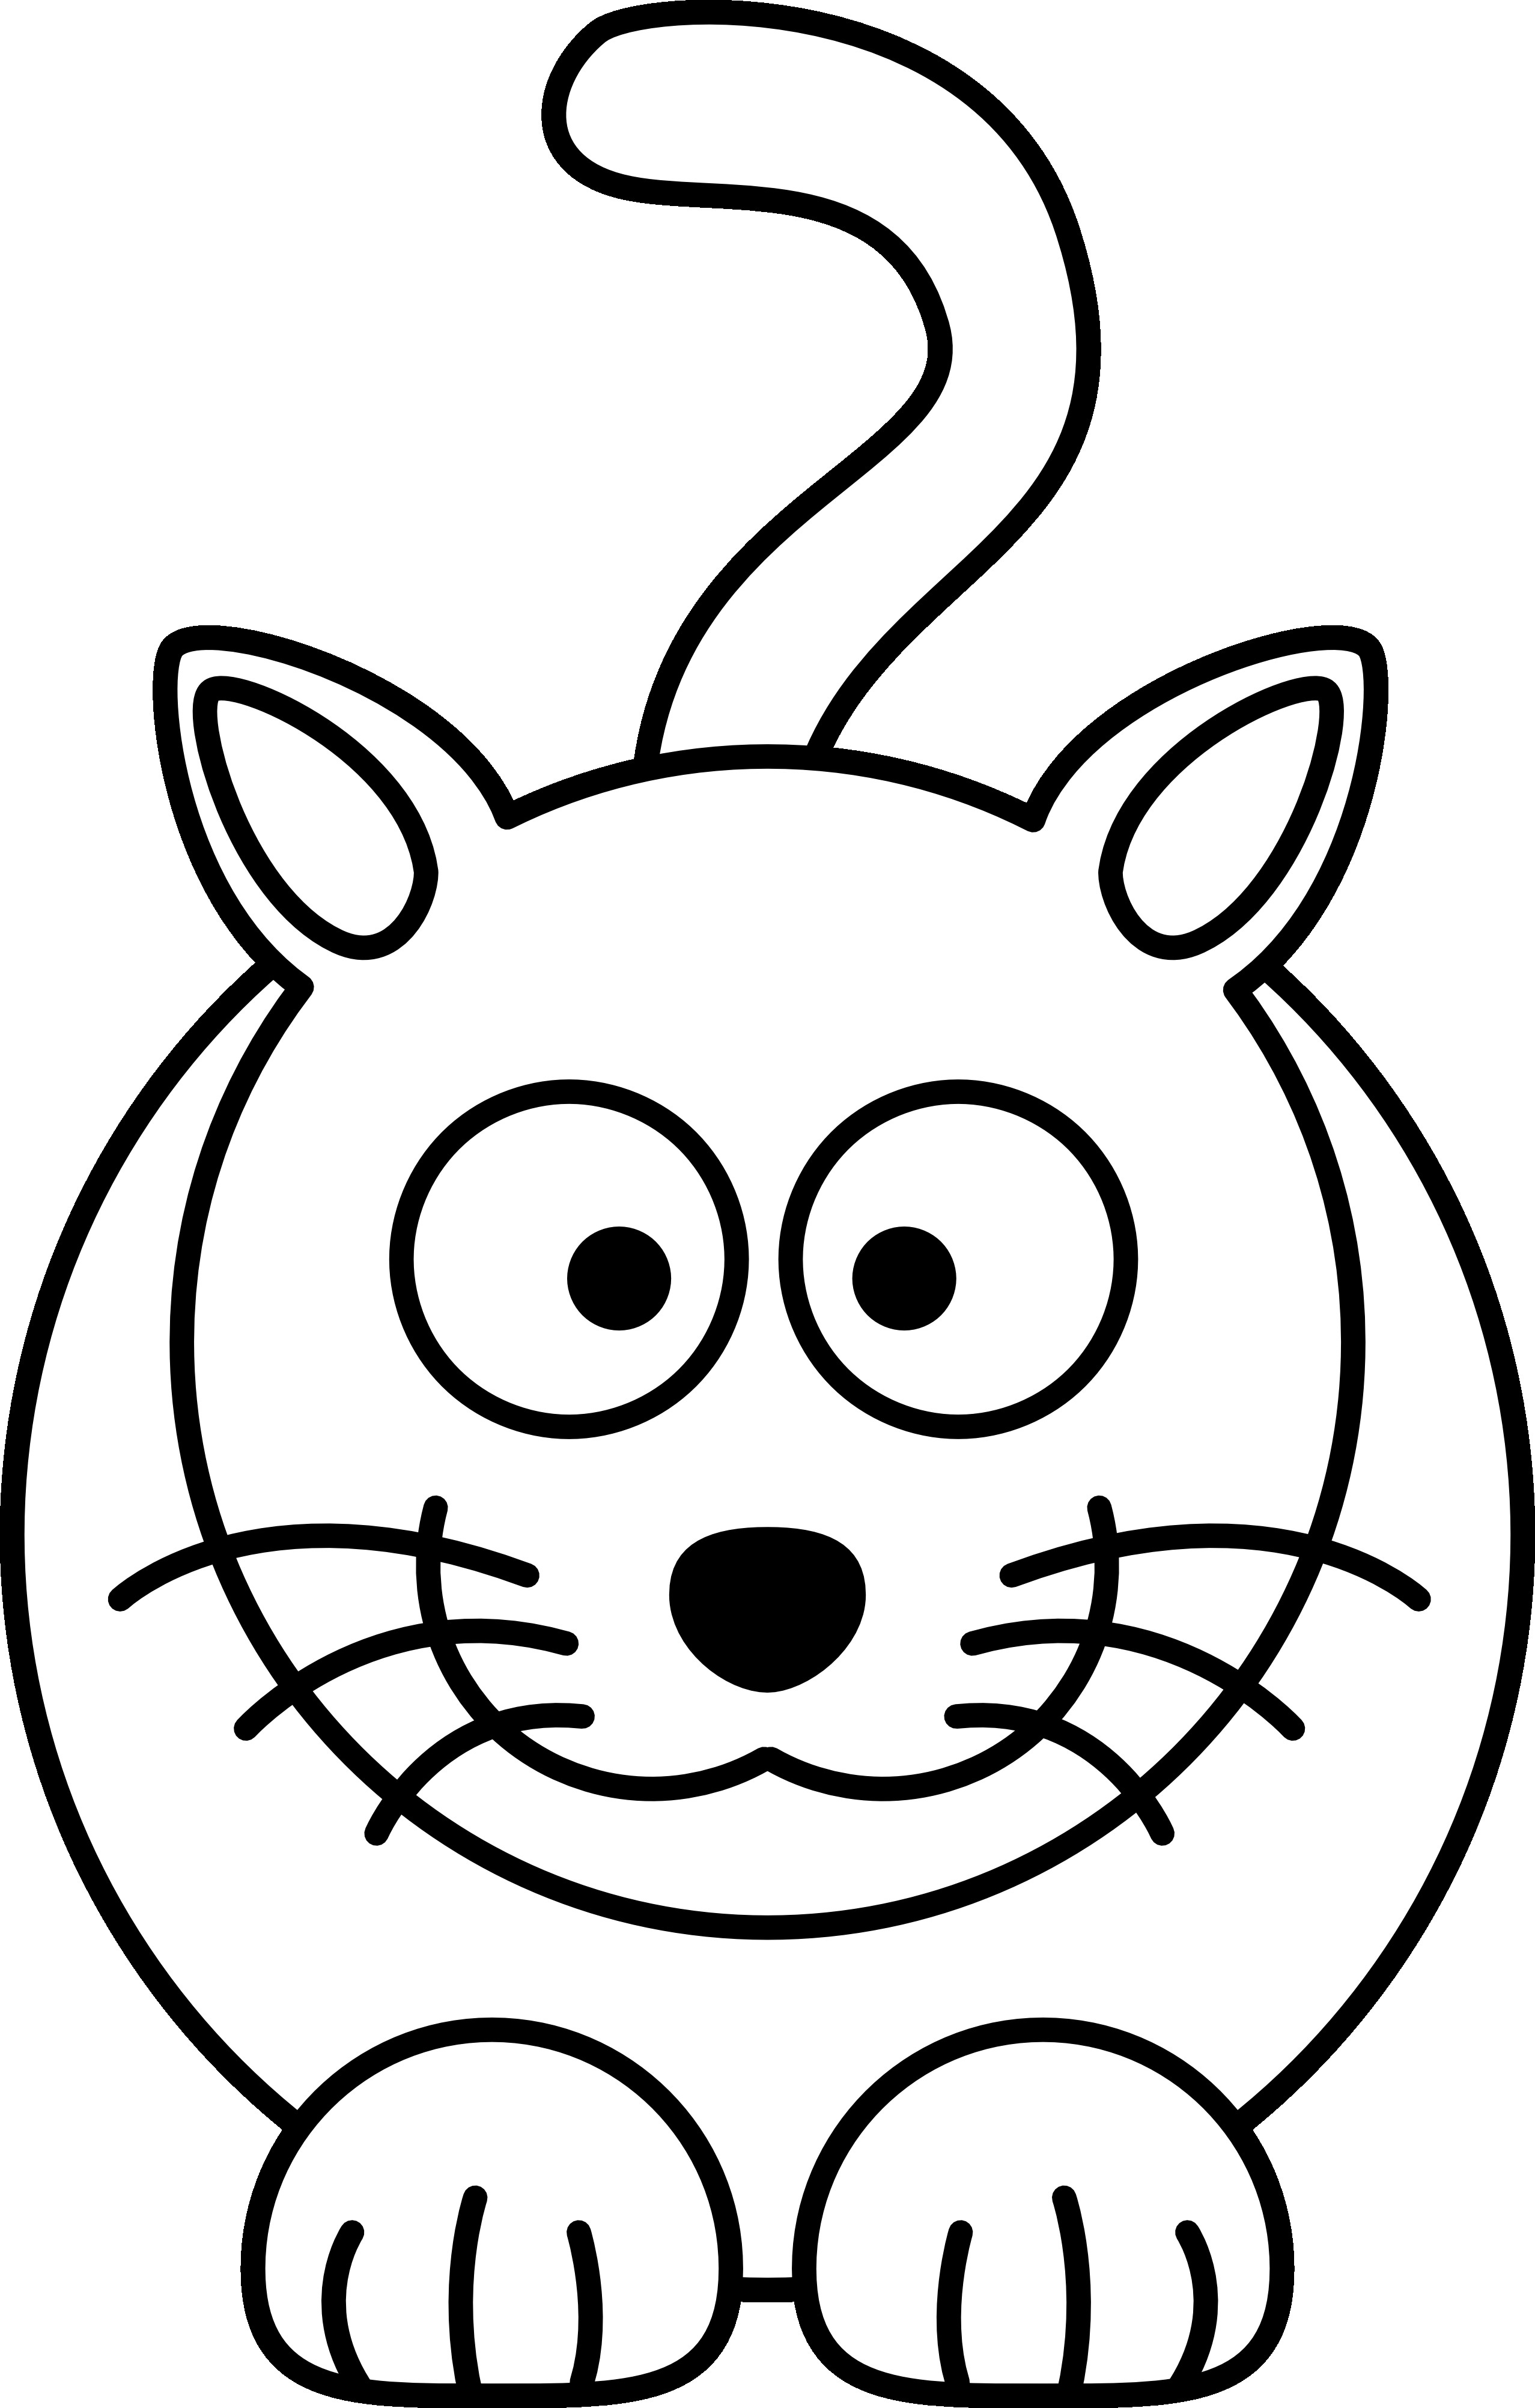 2555x4009 Simple Cat Drawing Fresh Collection Of Free Kitten Vector Easy